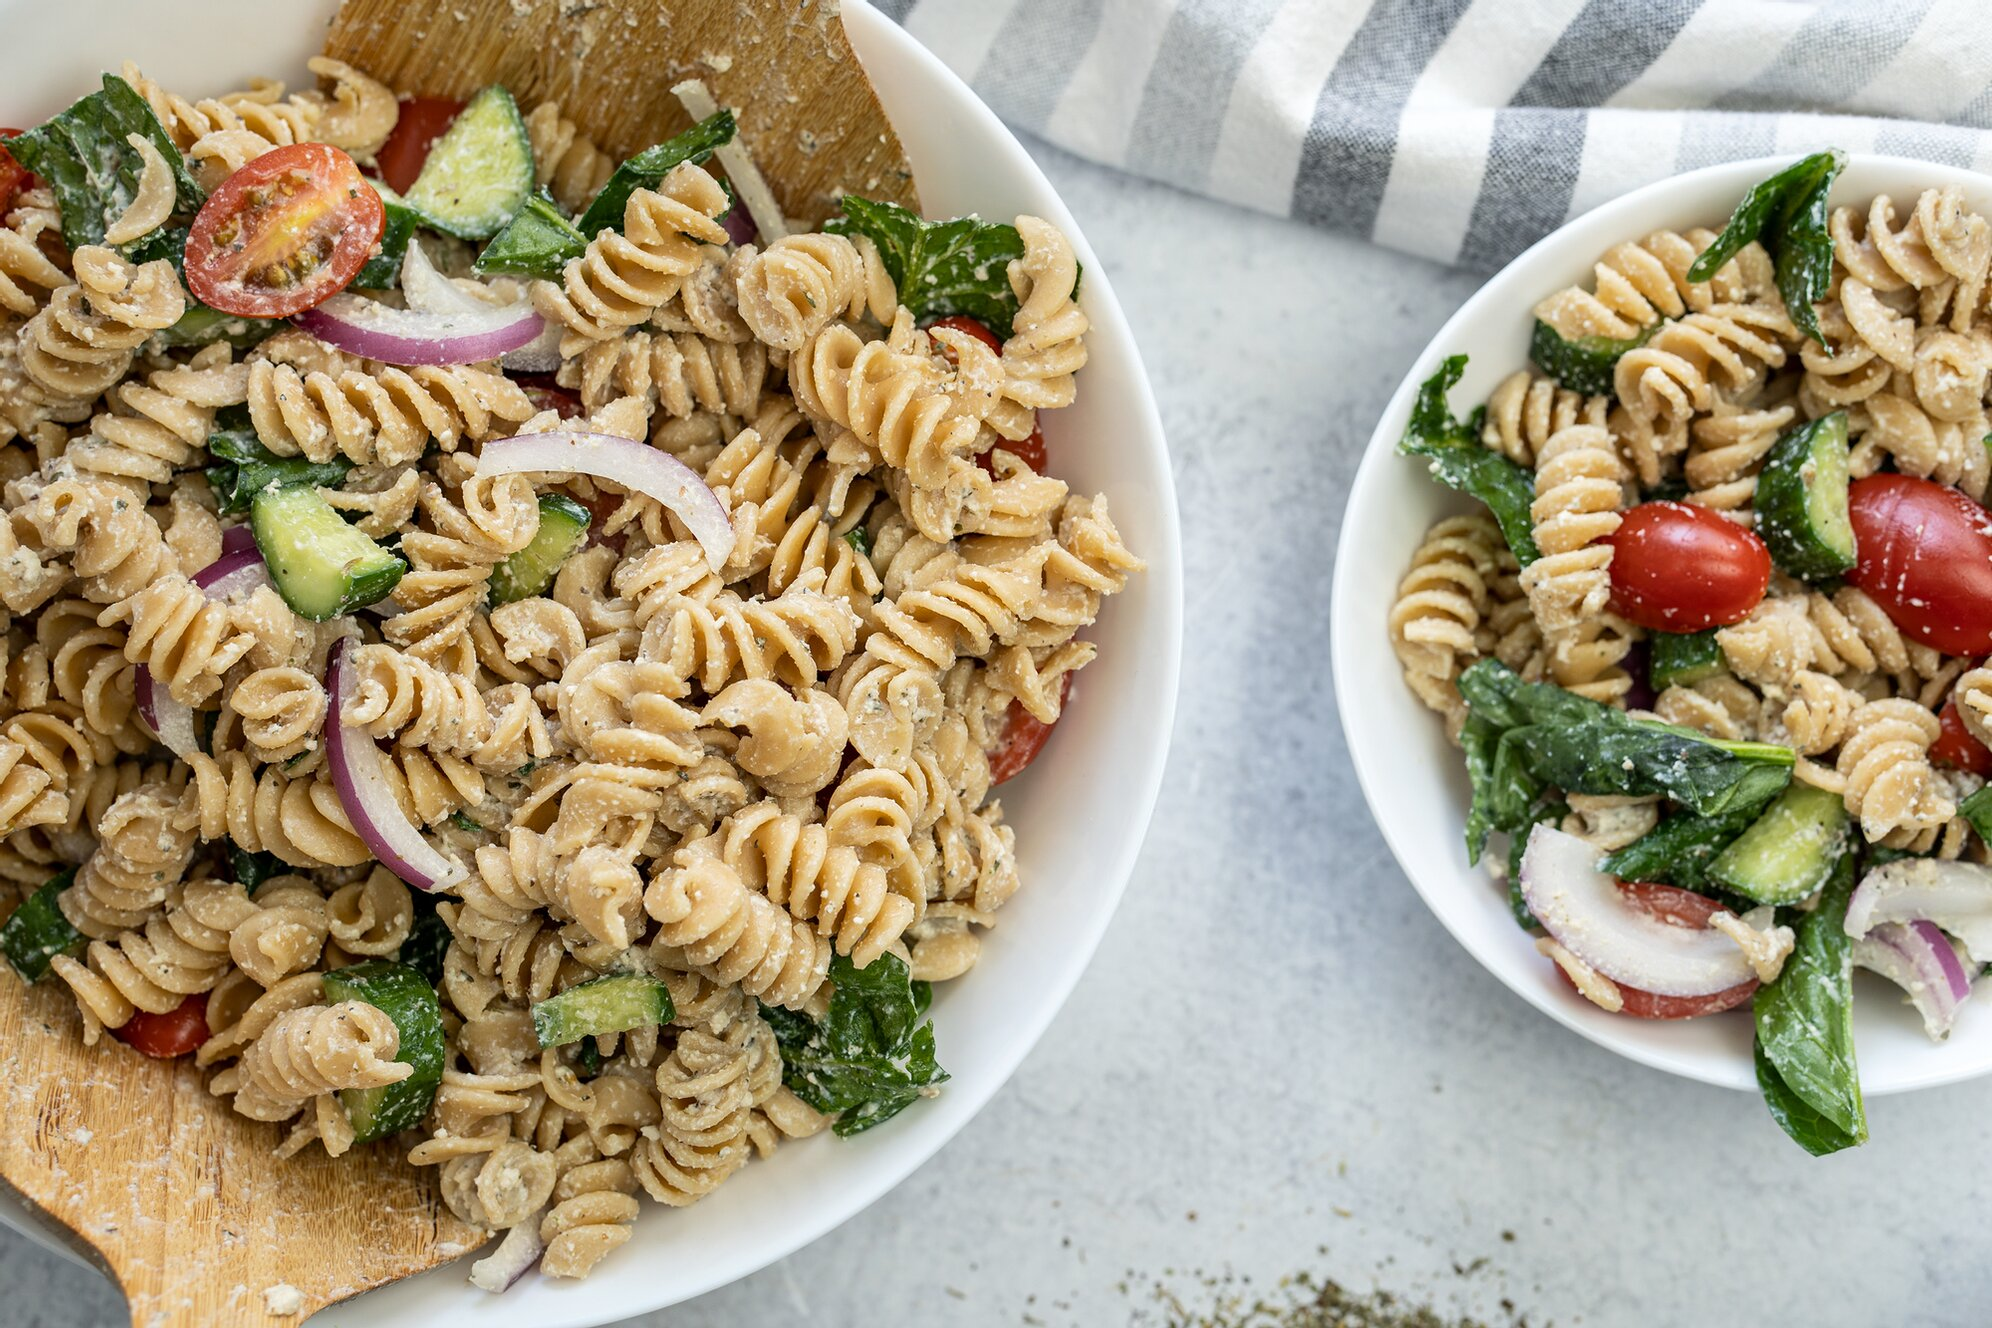 Vegan Cold Pasta Salad with OIL FREE Dressing